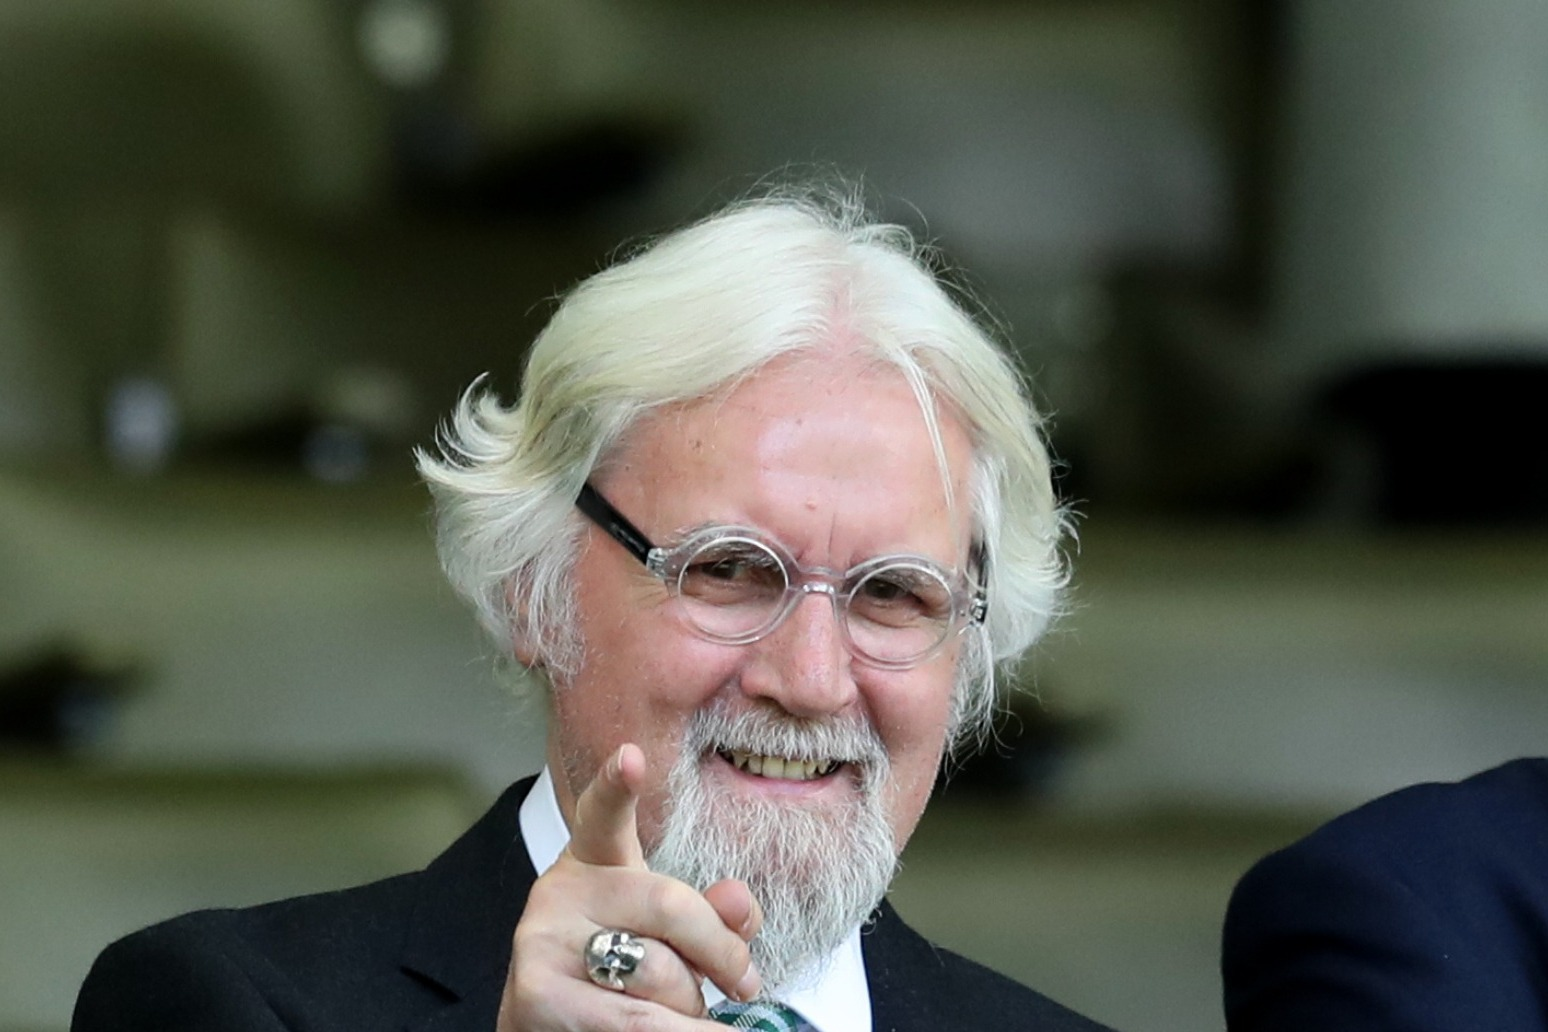 Sir Billy Connolly says health challenges make it difficult for him to film for television